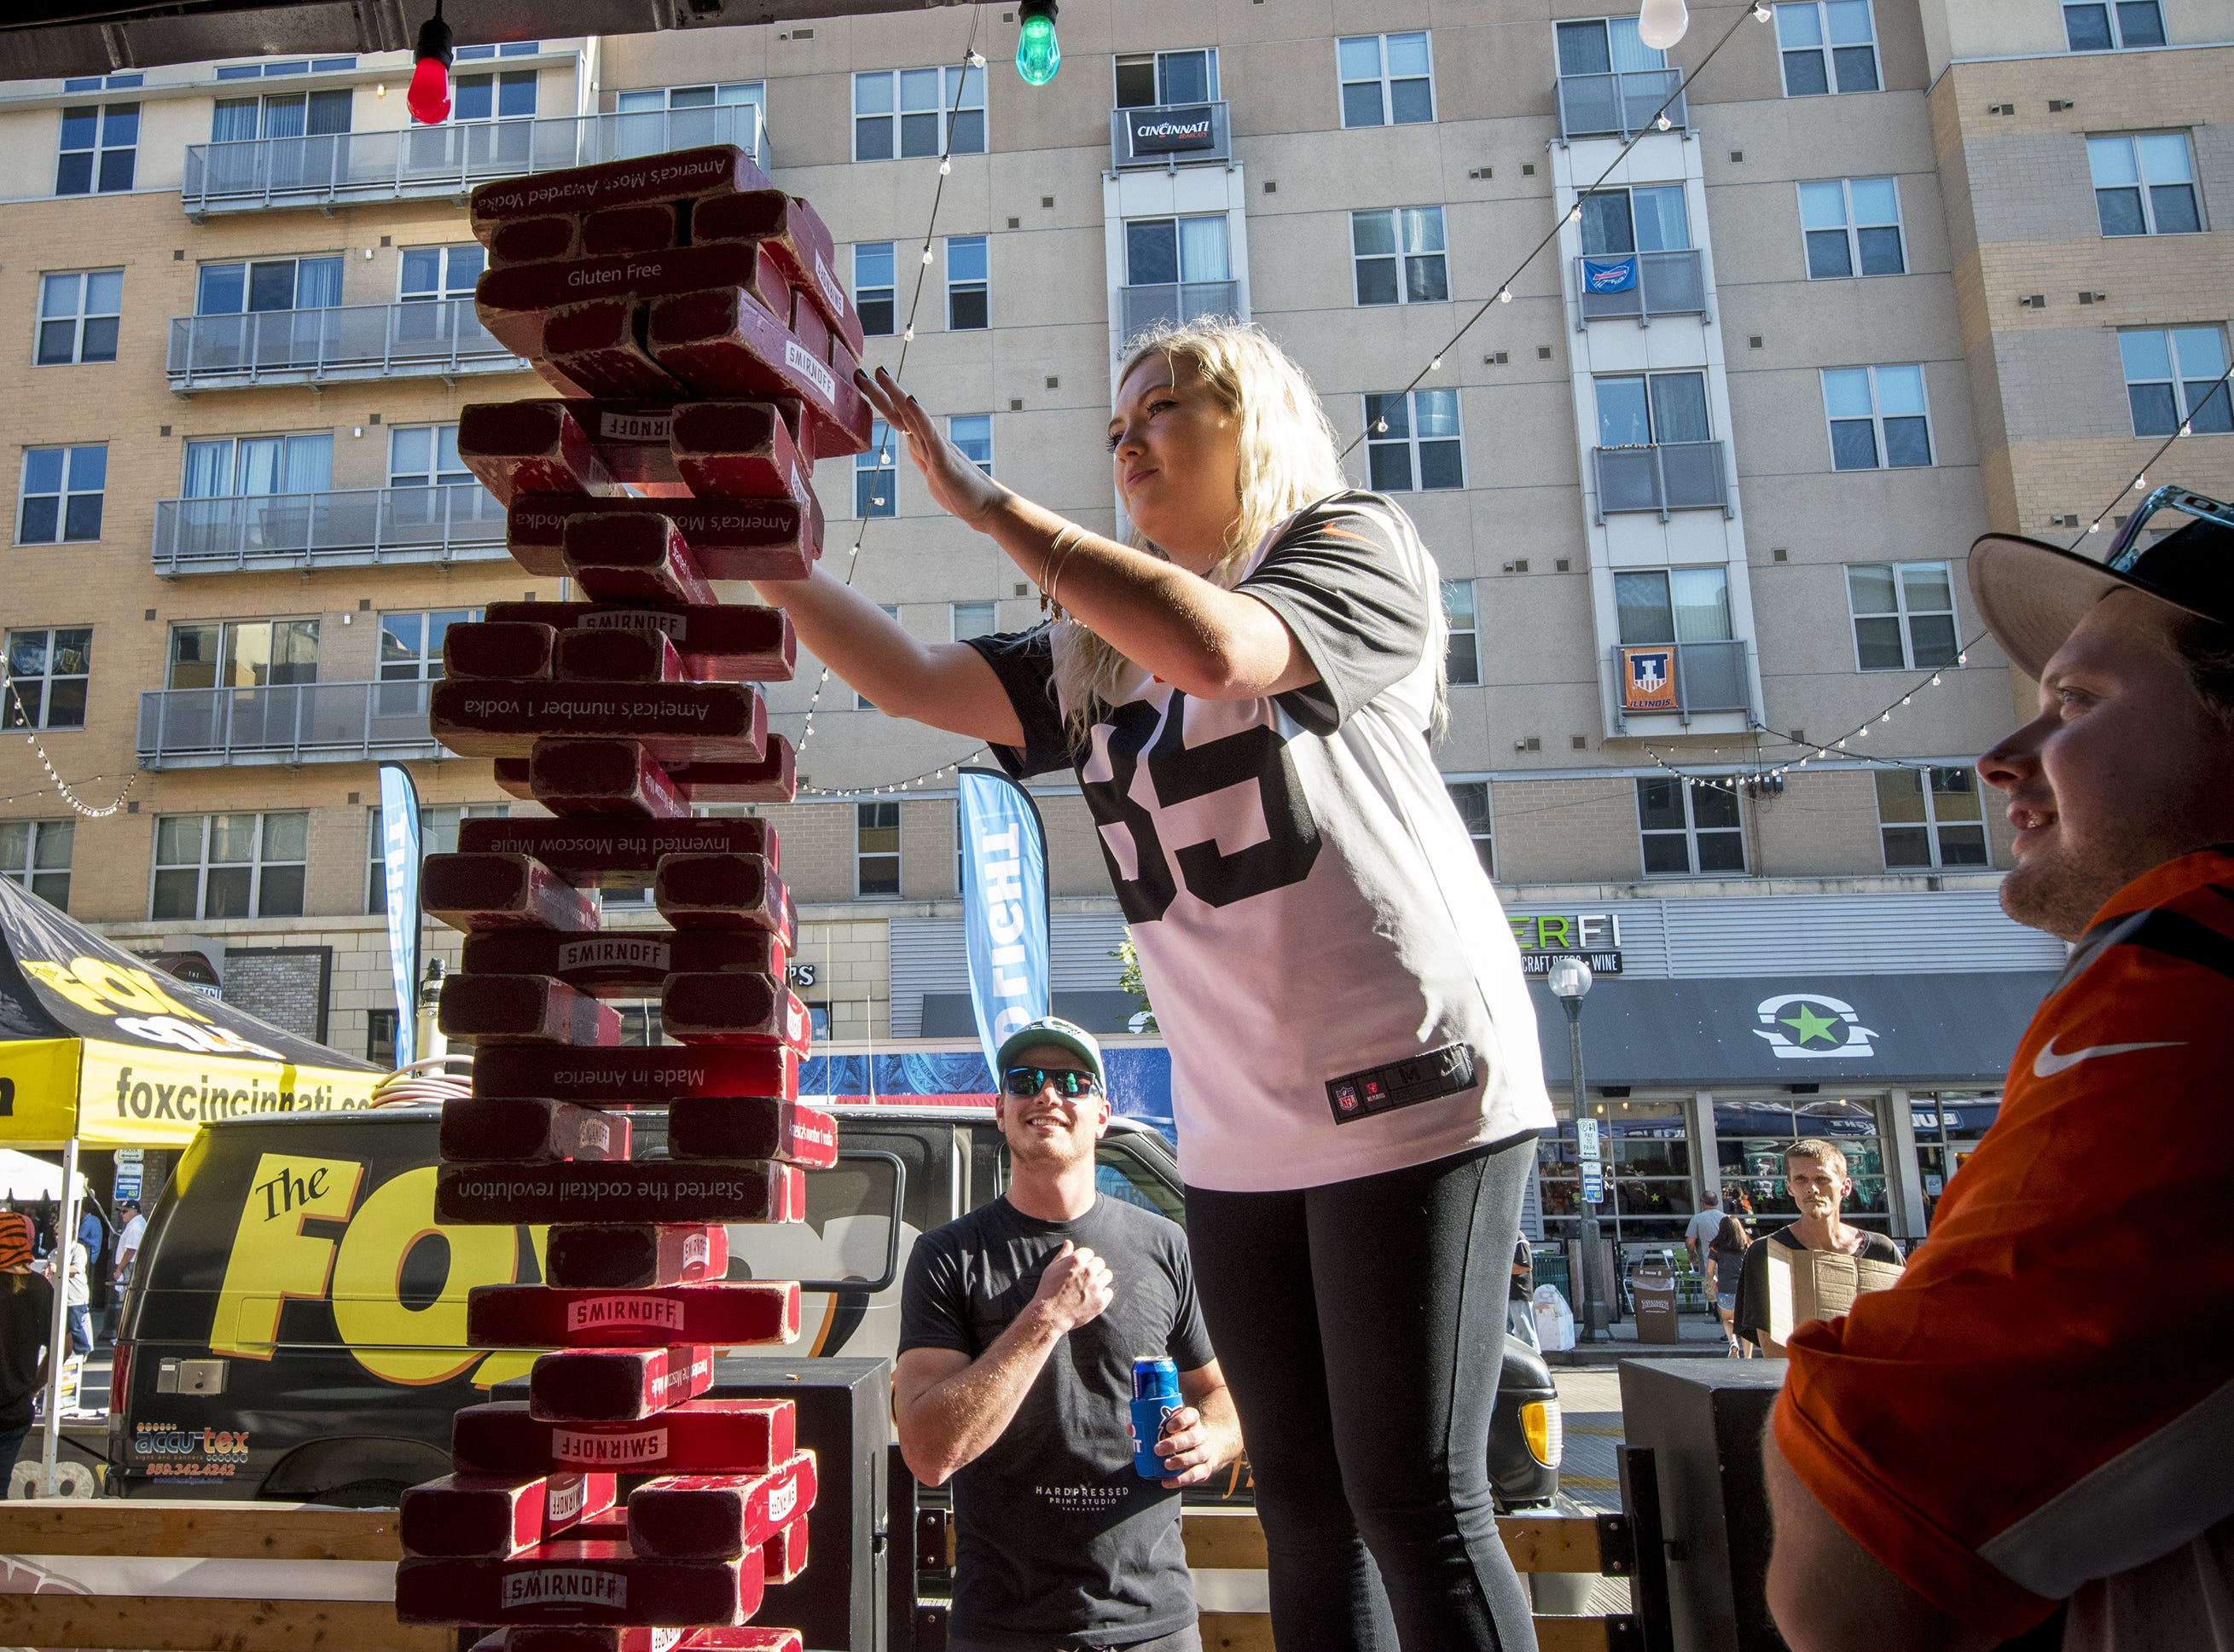 Bengals fan, Tricia Murphy, plays giant jenga at the Tin Roof before the Bengals game against the Baltimore Ravens Thursday, September 13, 2018 in Cincinnati, Ohio.